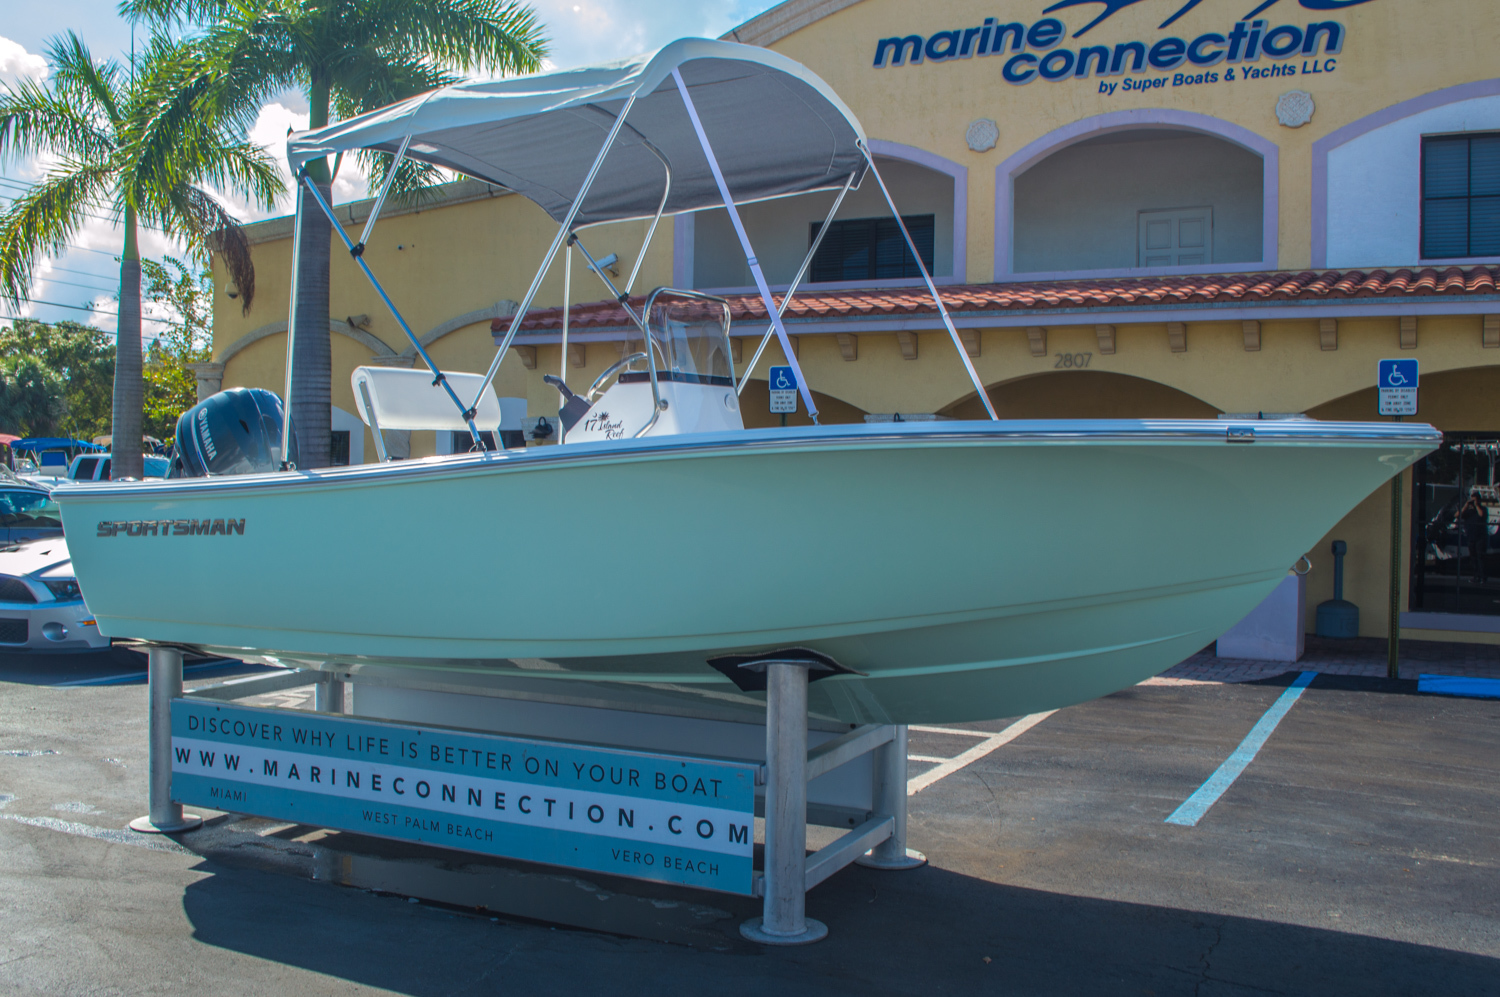 Thumbnail 1 for New 2016 Sportsman 17 Island Reef boat for sale in West Palm Beach, FL